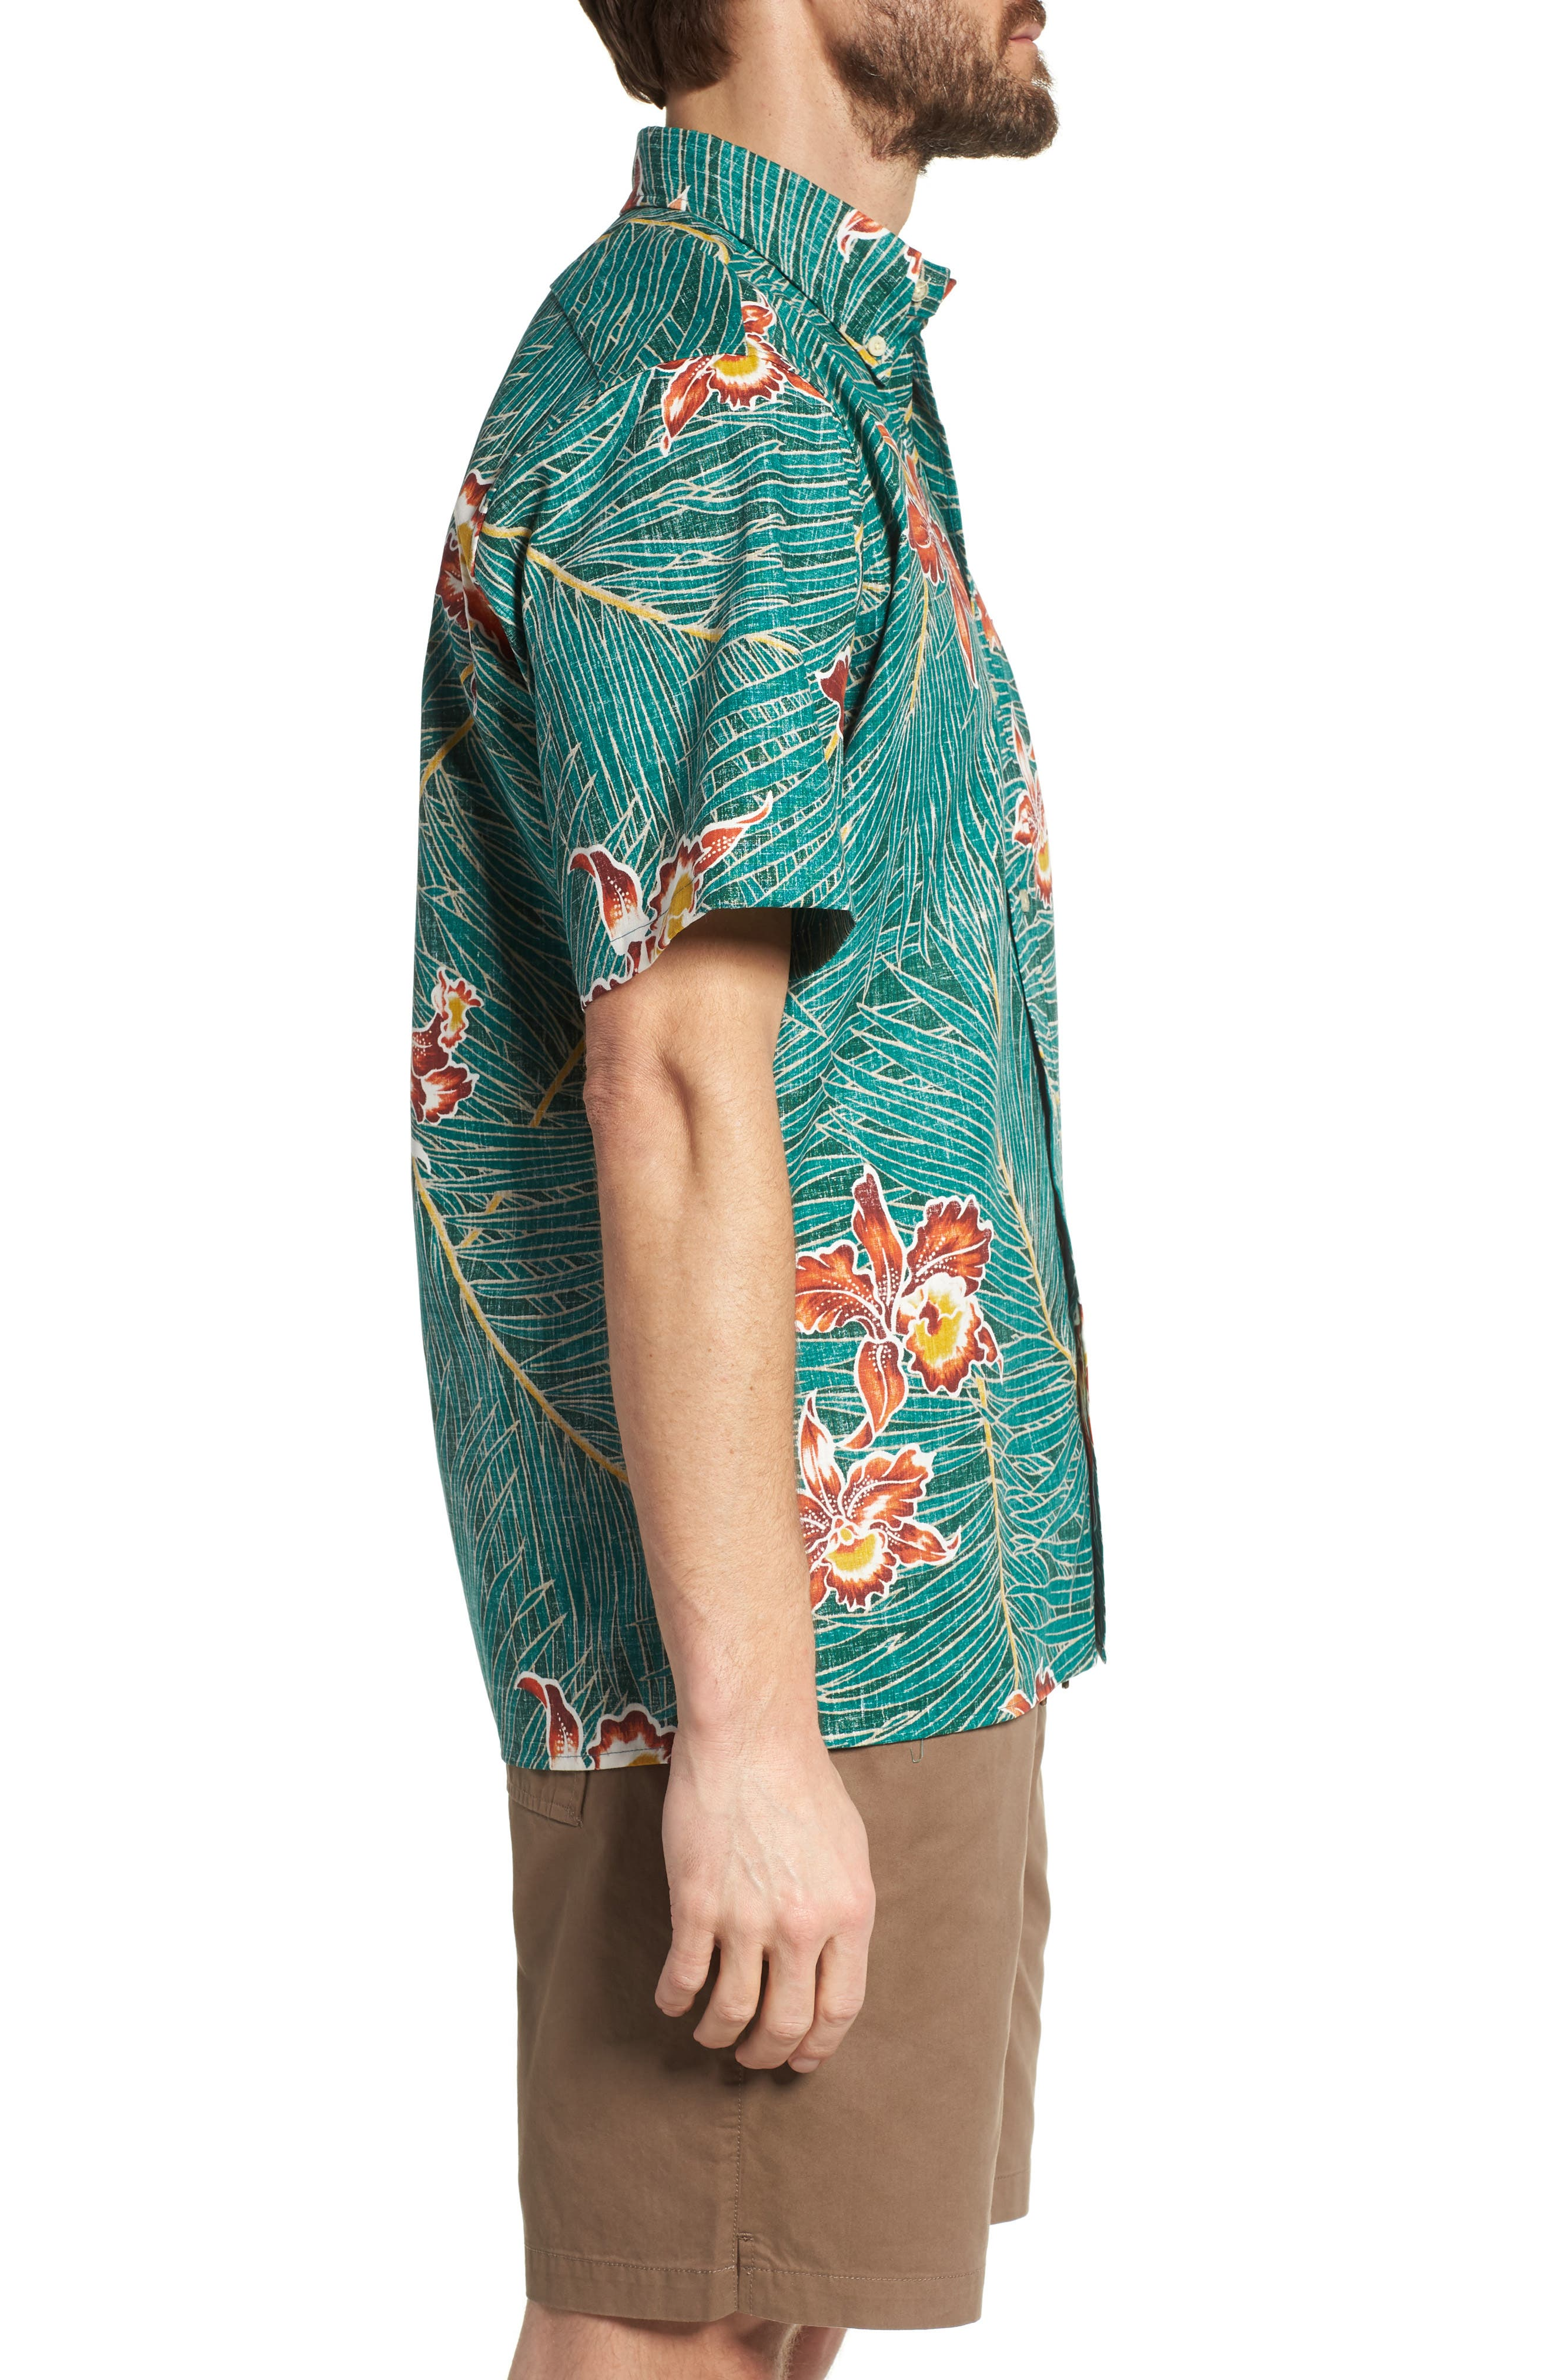 Okika Oasis Traditional Fit Sport Shirt,                             Alternate thumbnail 3, color,                             310